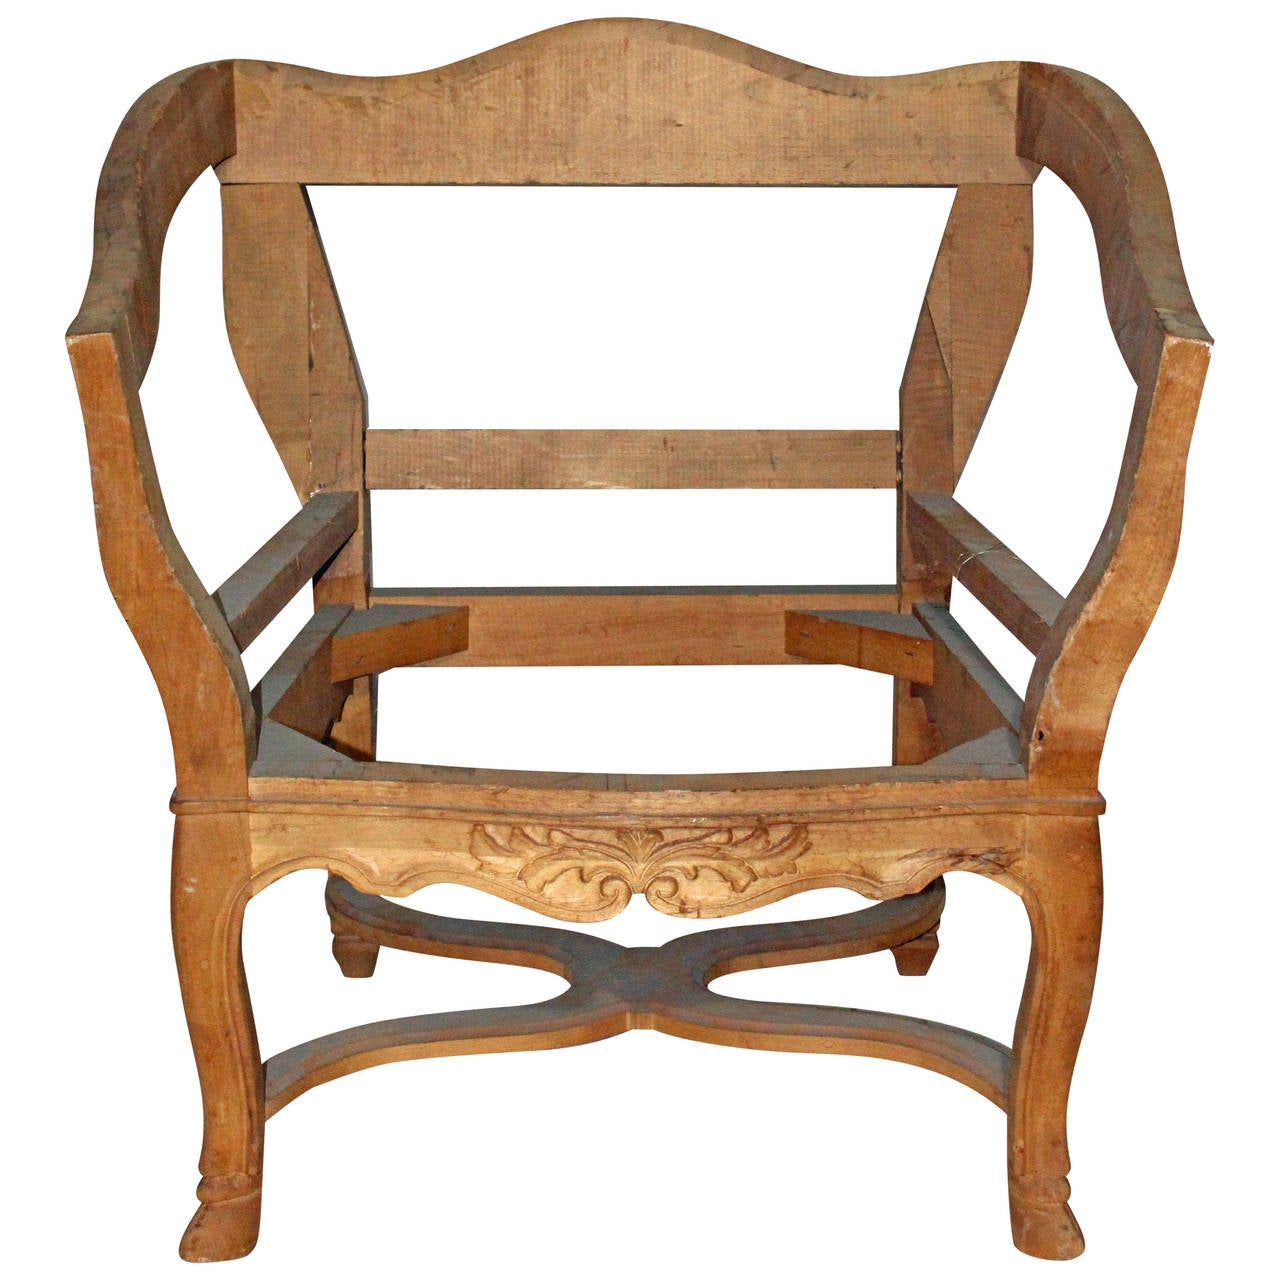 "Hollywood regency style ""Tulip"" chair frame"